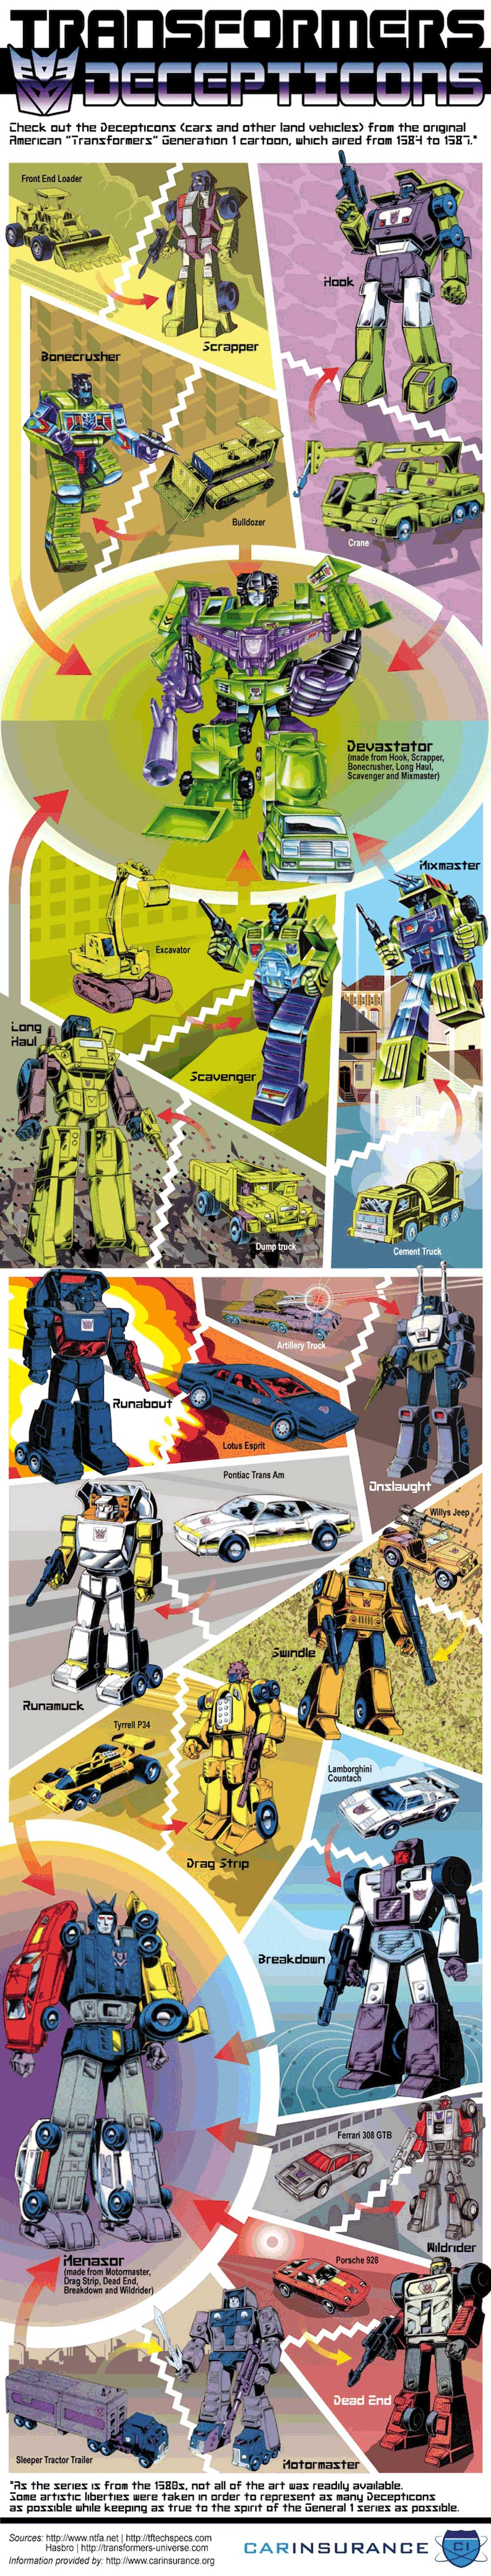 Infographic Transformers: decepticons